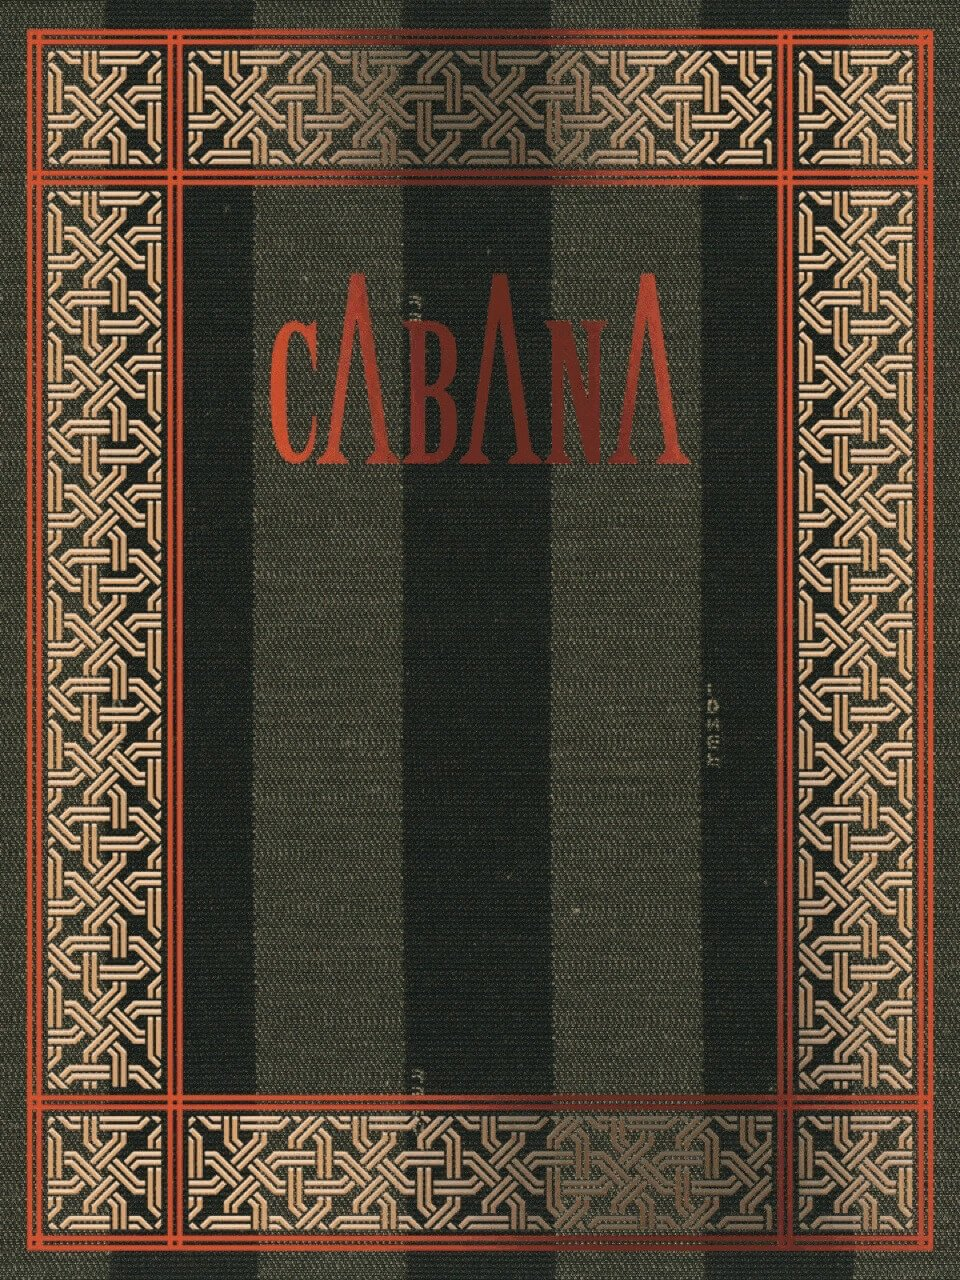 Cabana magazine disponibile online su Frab's magazines and more